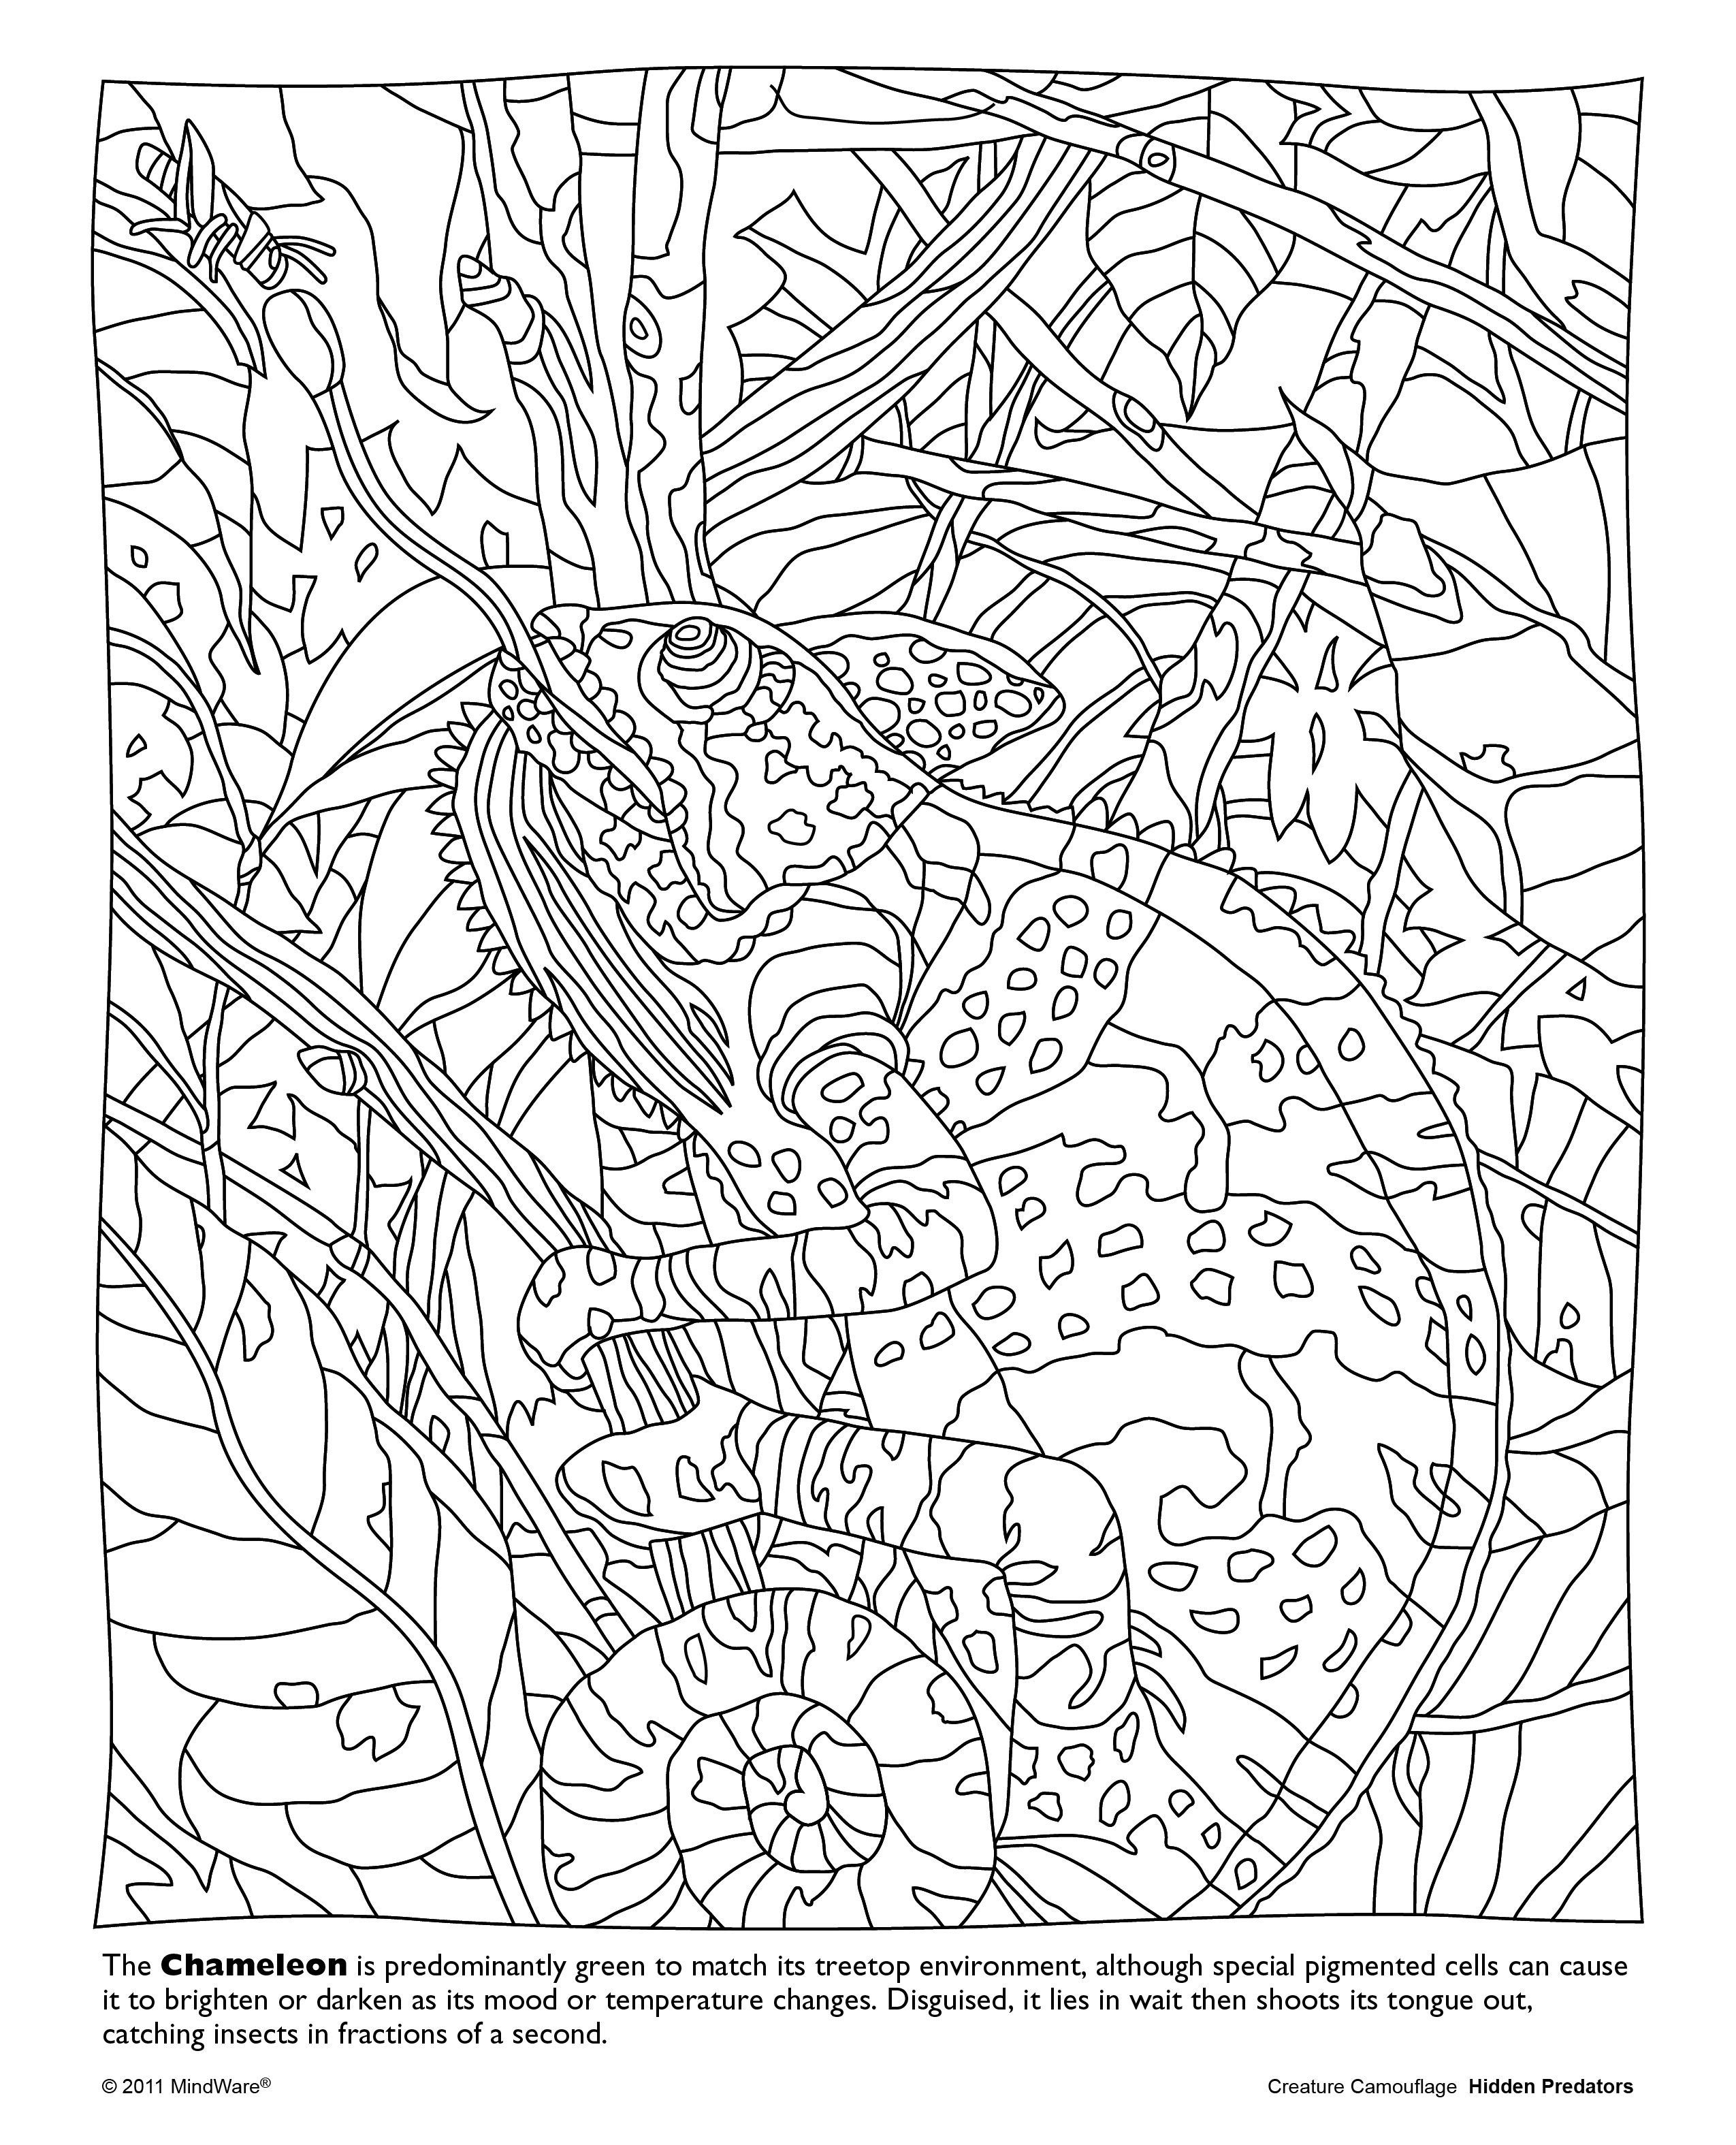 Mindware Coloring Pages To Print 2019 Http Www Wallpaperartdesignhd Us Mindware Coloring Pages To Animal Coloring Pages Animal Coloring Books Coloring Pages